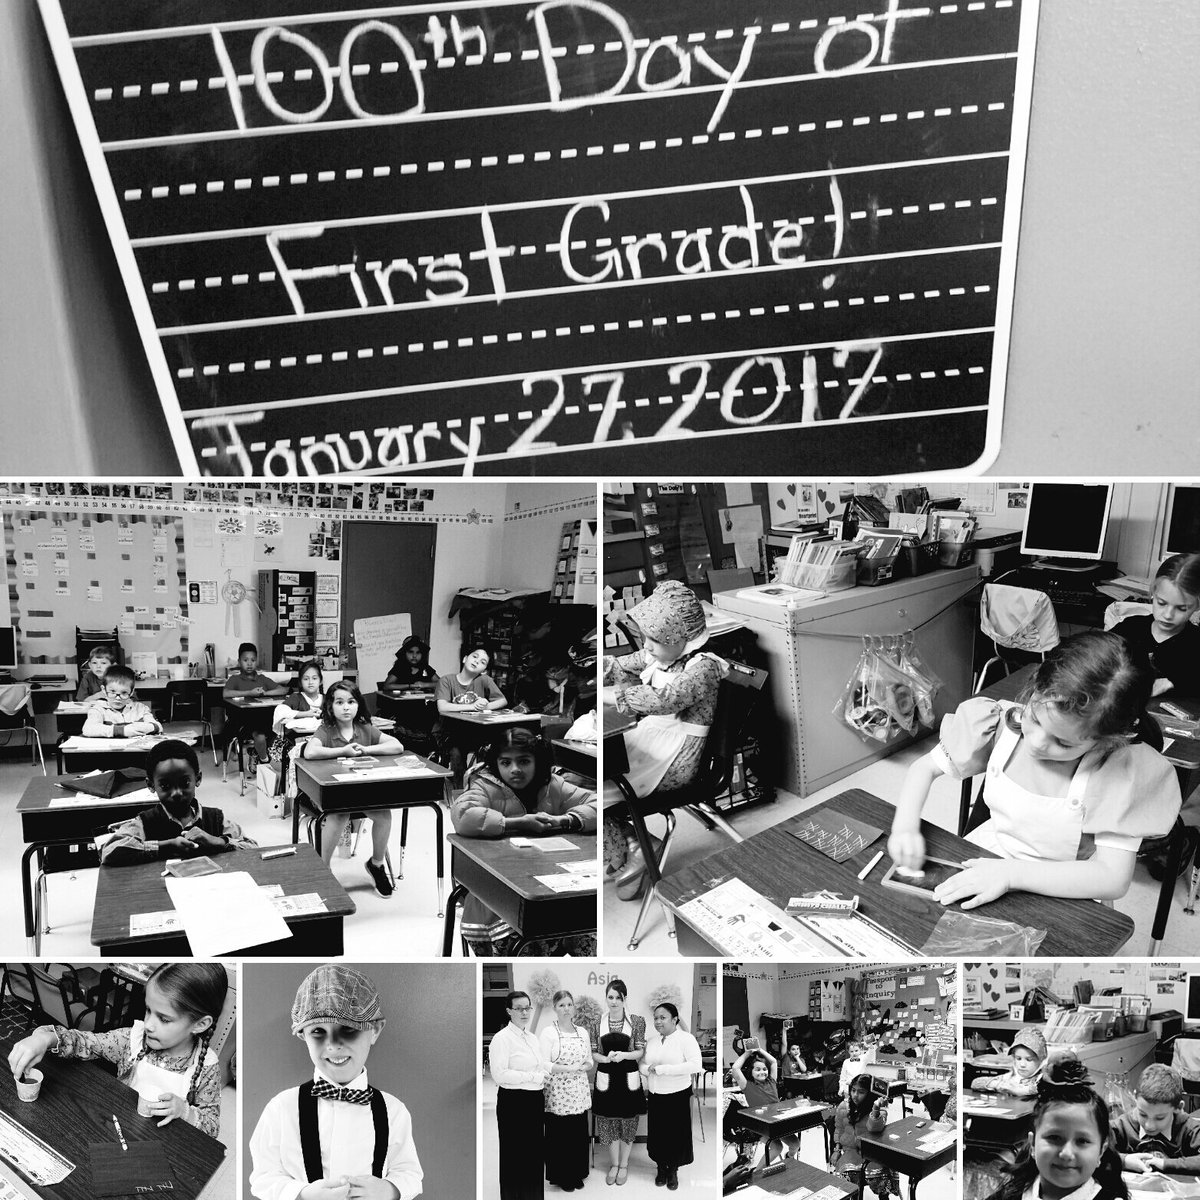 100th Day of School! #whereweareinplaceandtime #school100yrsago @HCPSRiverhills @ibpyp #hcpsteach